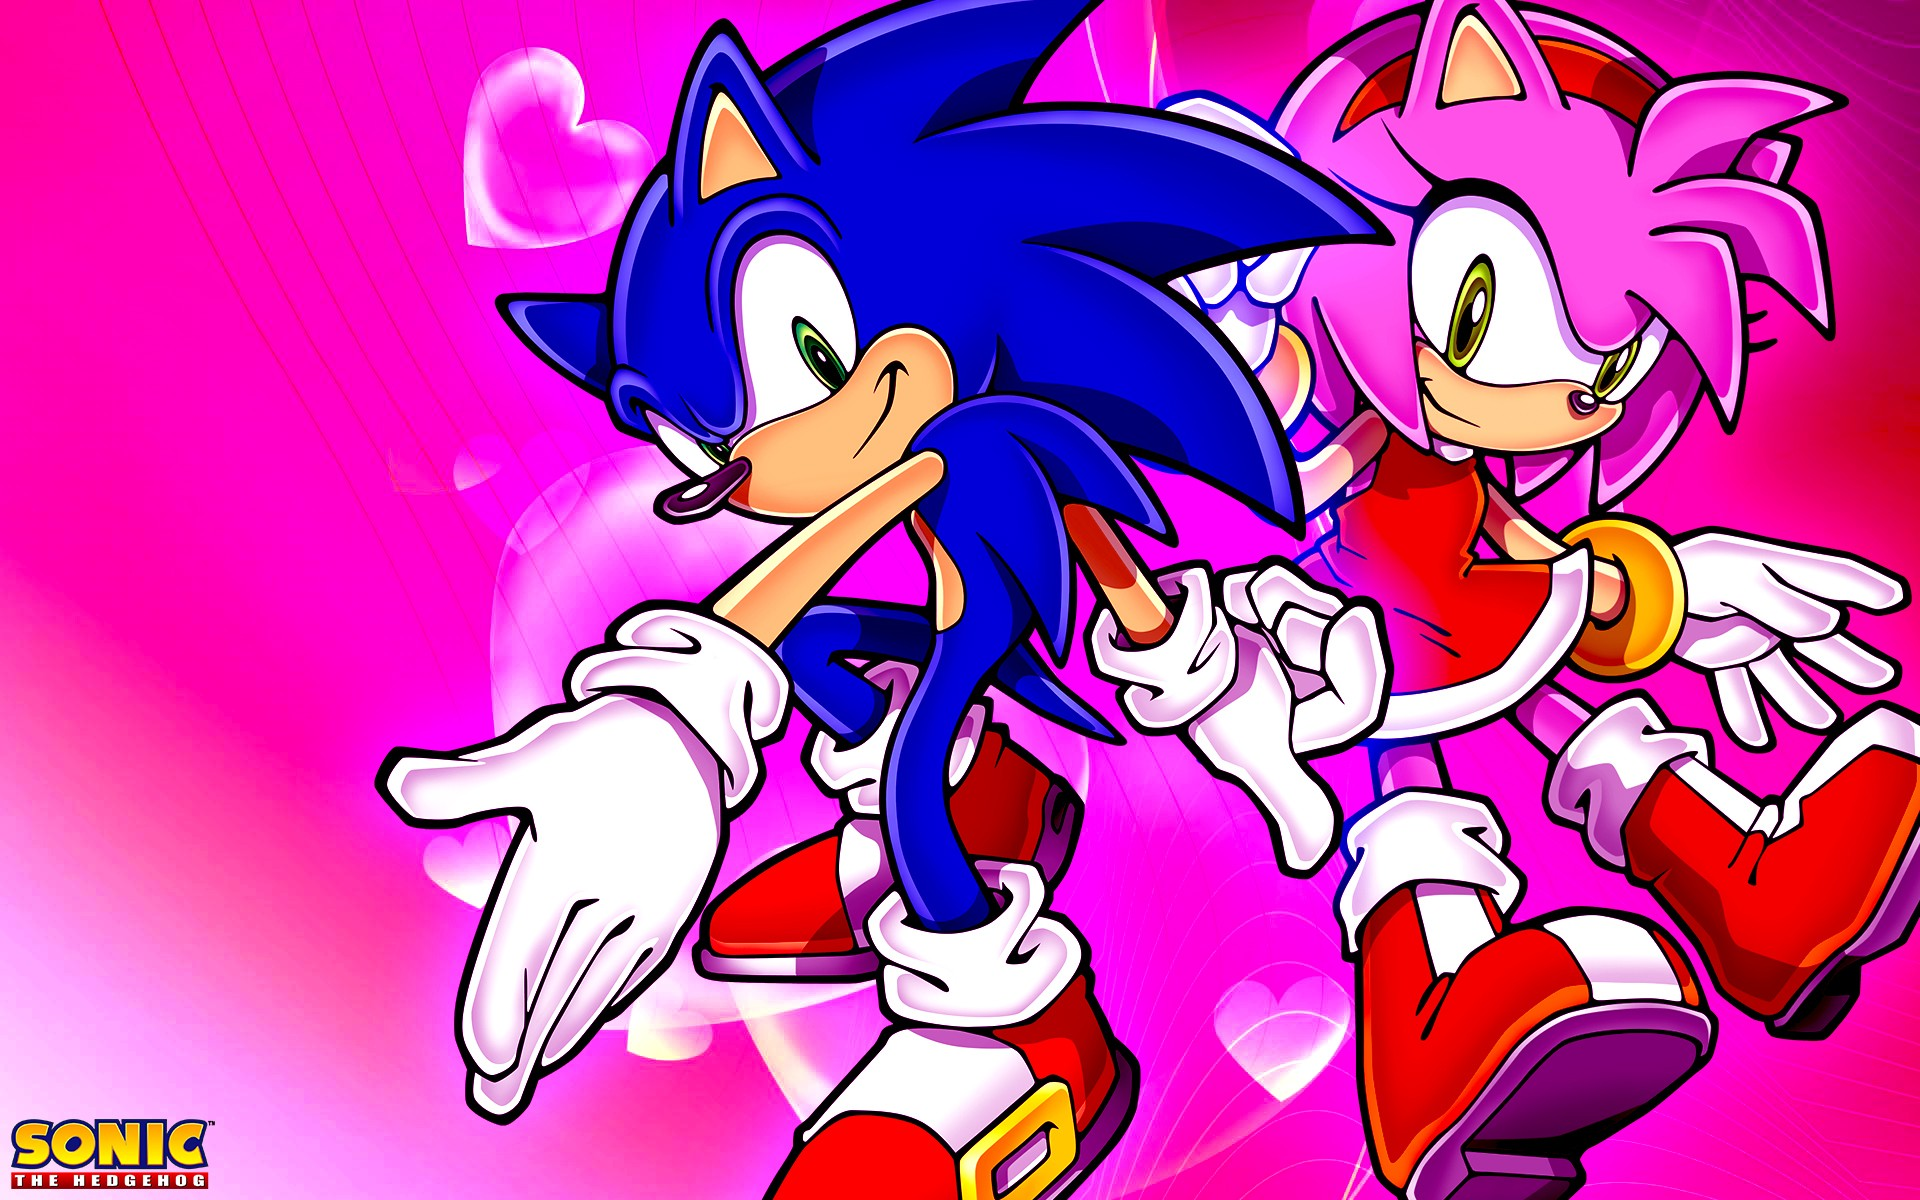 Sonic the Hedgehog Full HD Wallpaper and Background Image ...